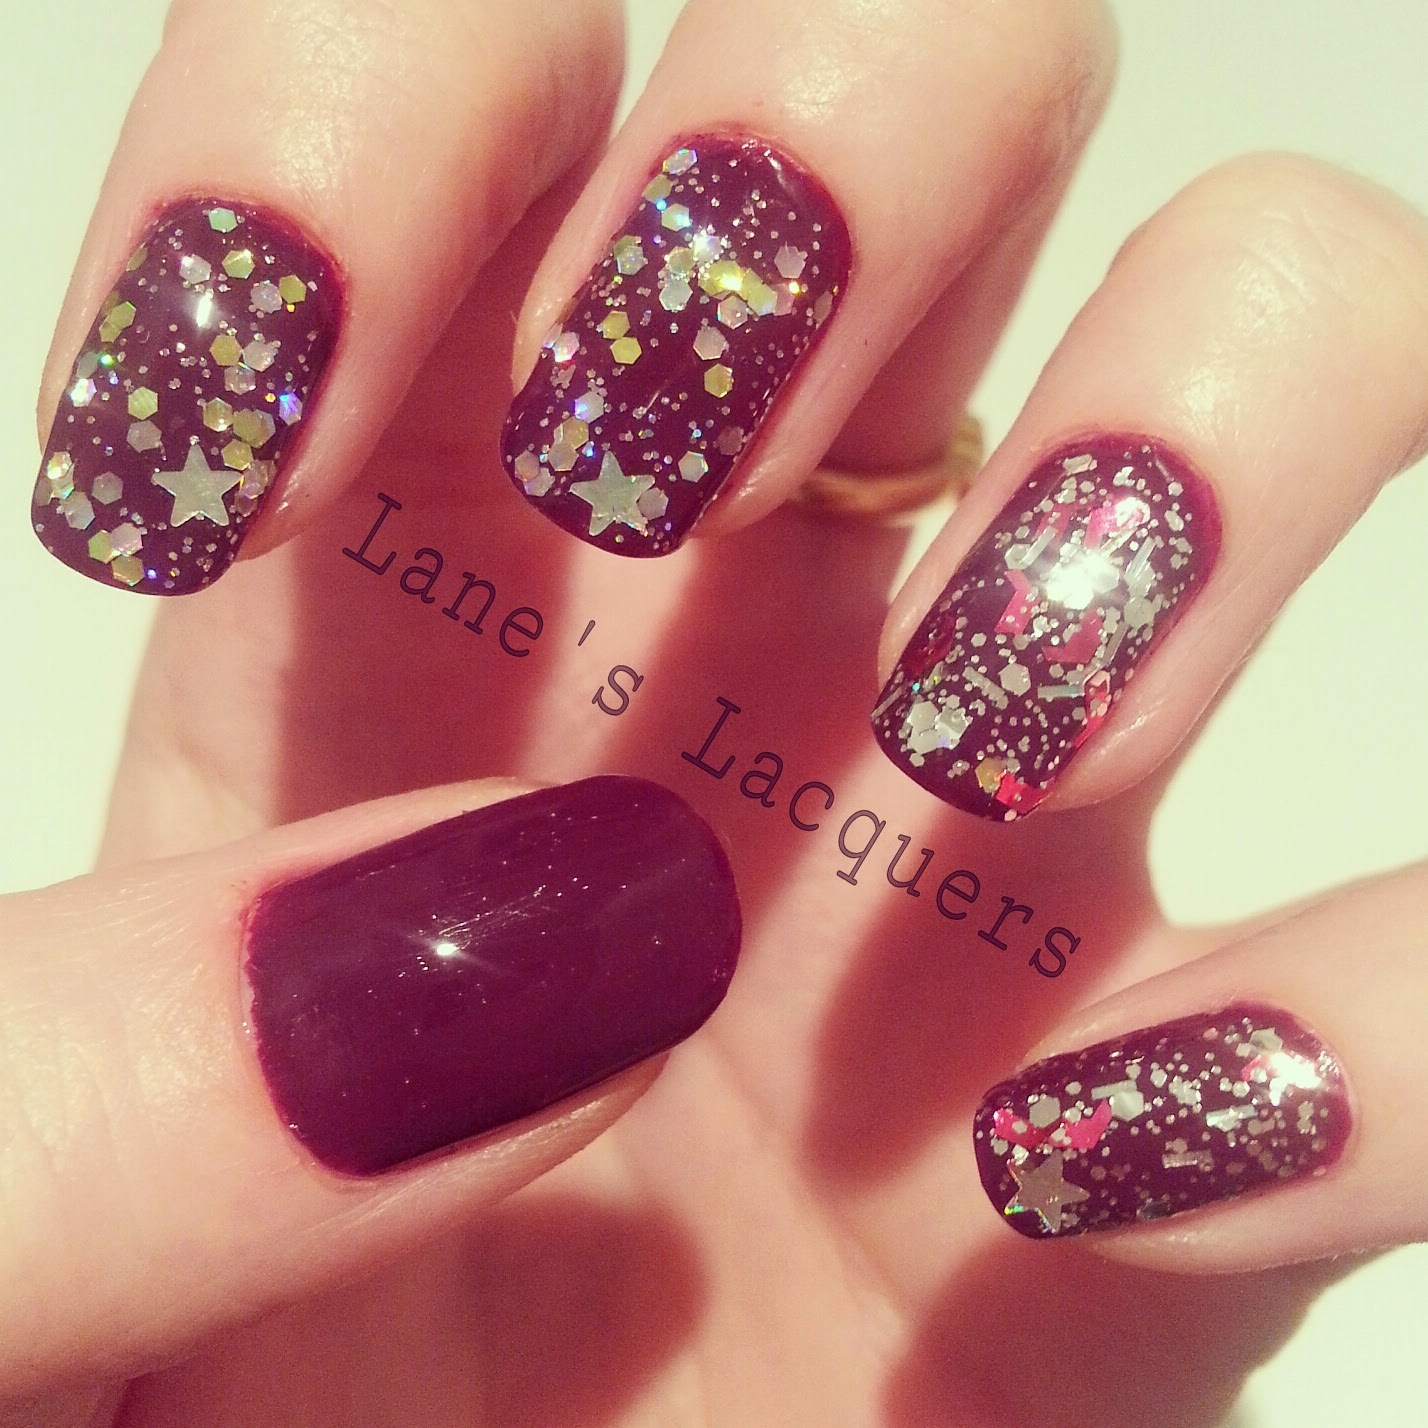 barry-m-starlight-moonlight-berry-cosmo-swatch-nails